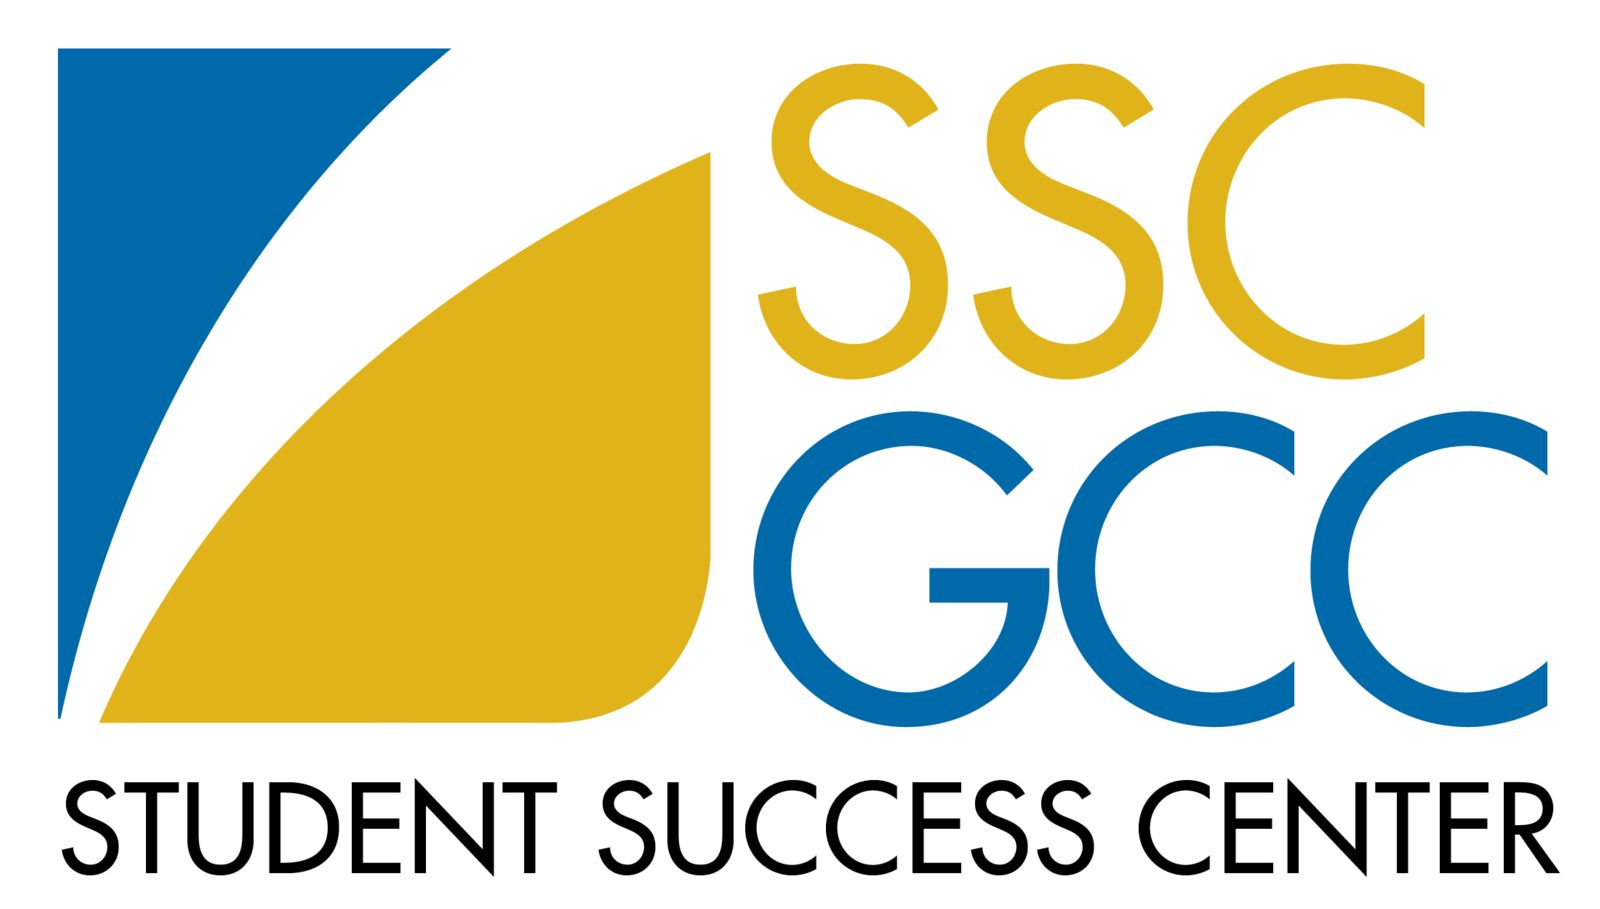 GCC Student Success Center Logo - Full Color